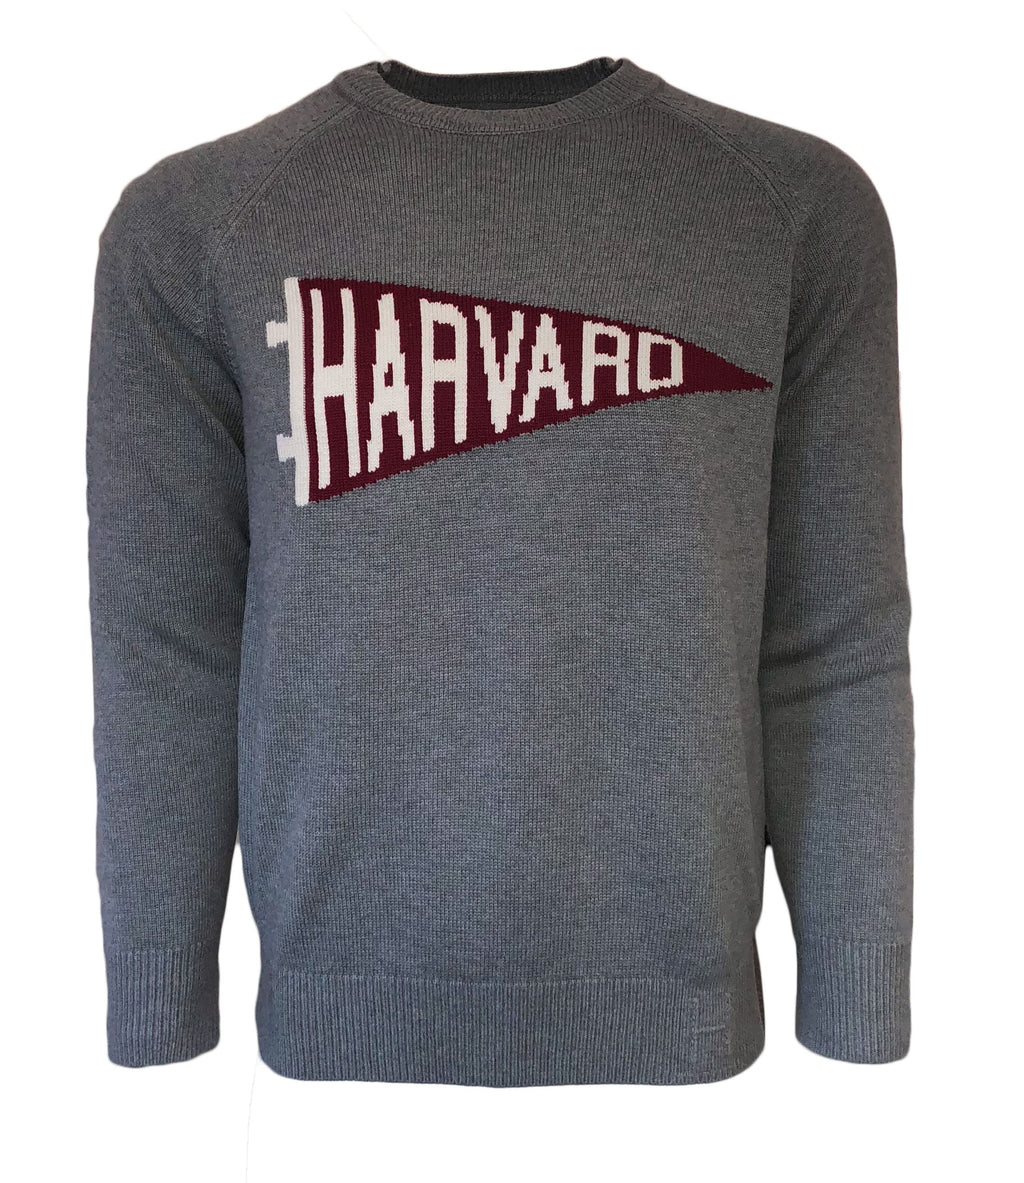 Harvard Pennant Sweater